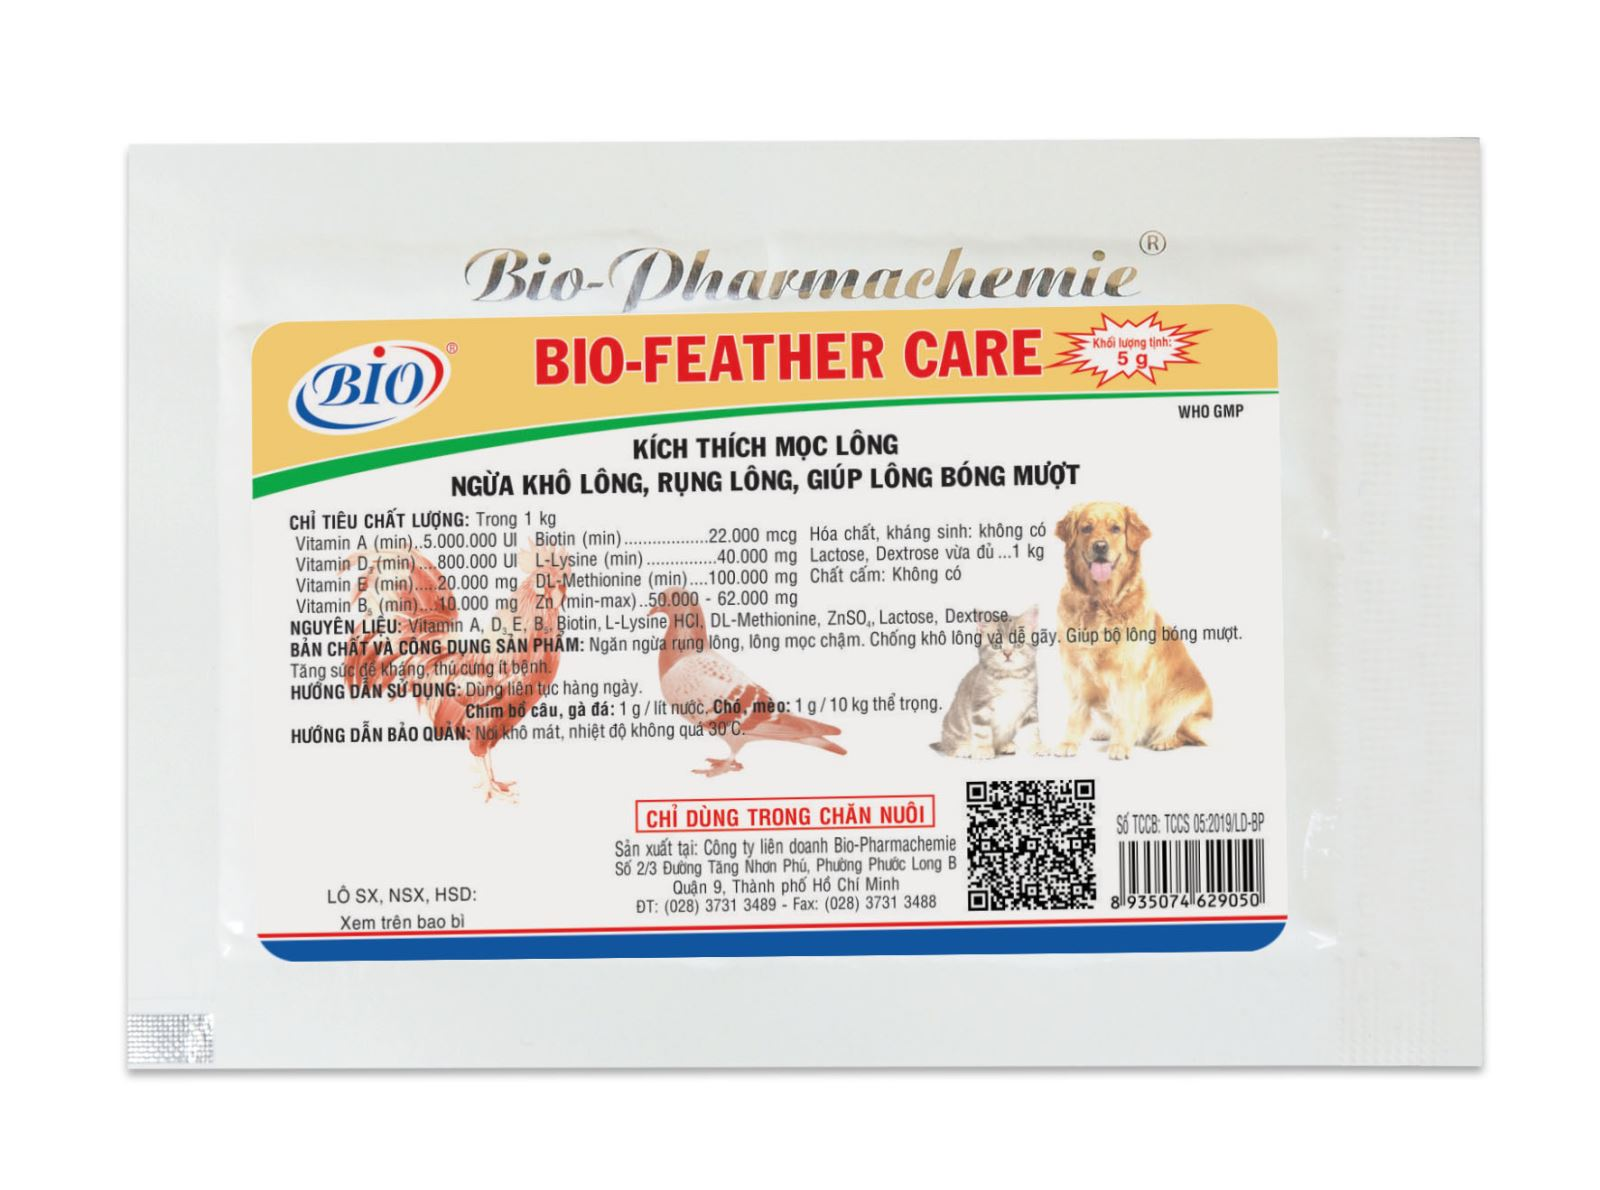 BIO - FEATHER CARE 5G